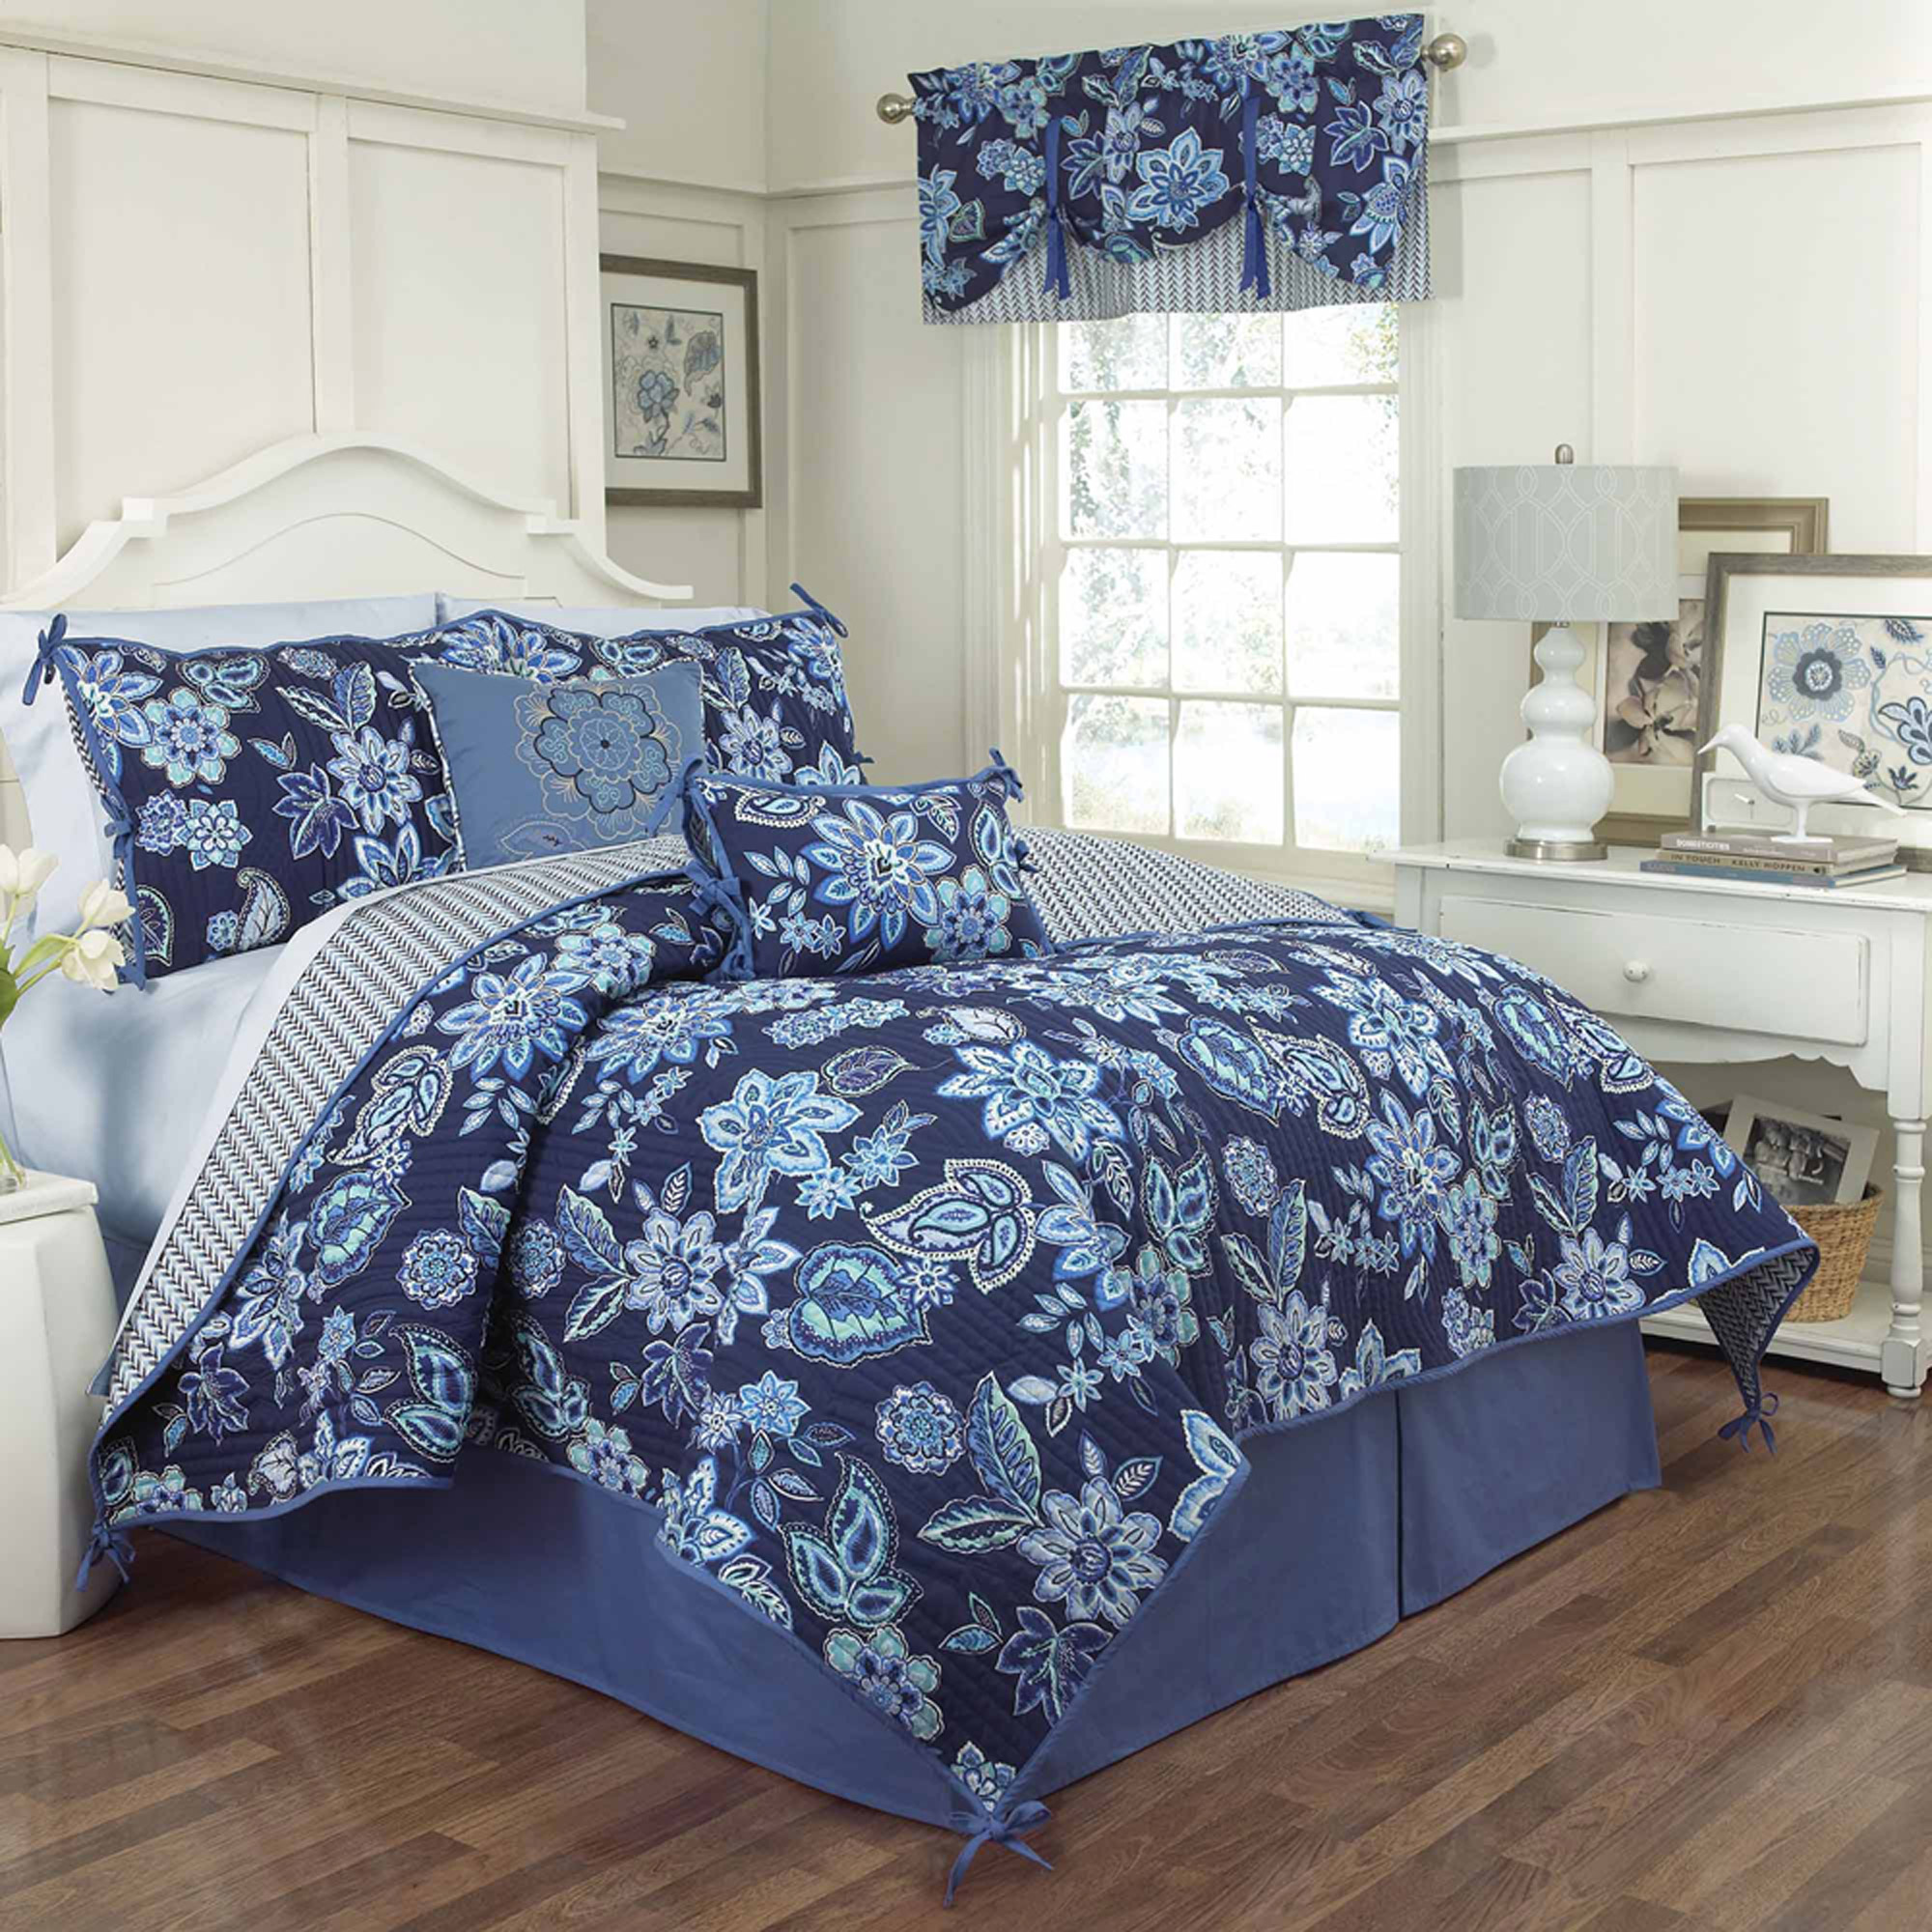 set fabrics sonata charismatic waverly quilts bedding designs rose quilt